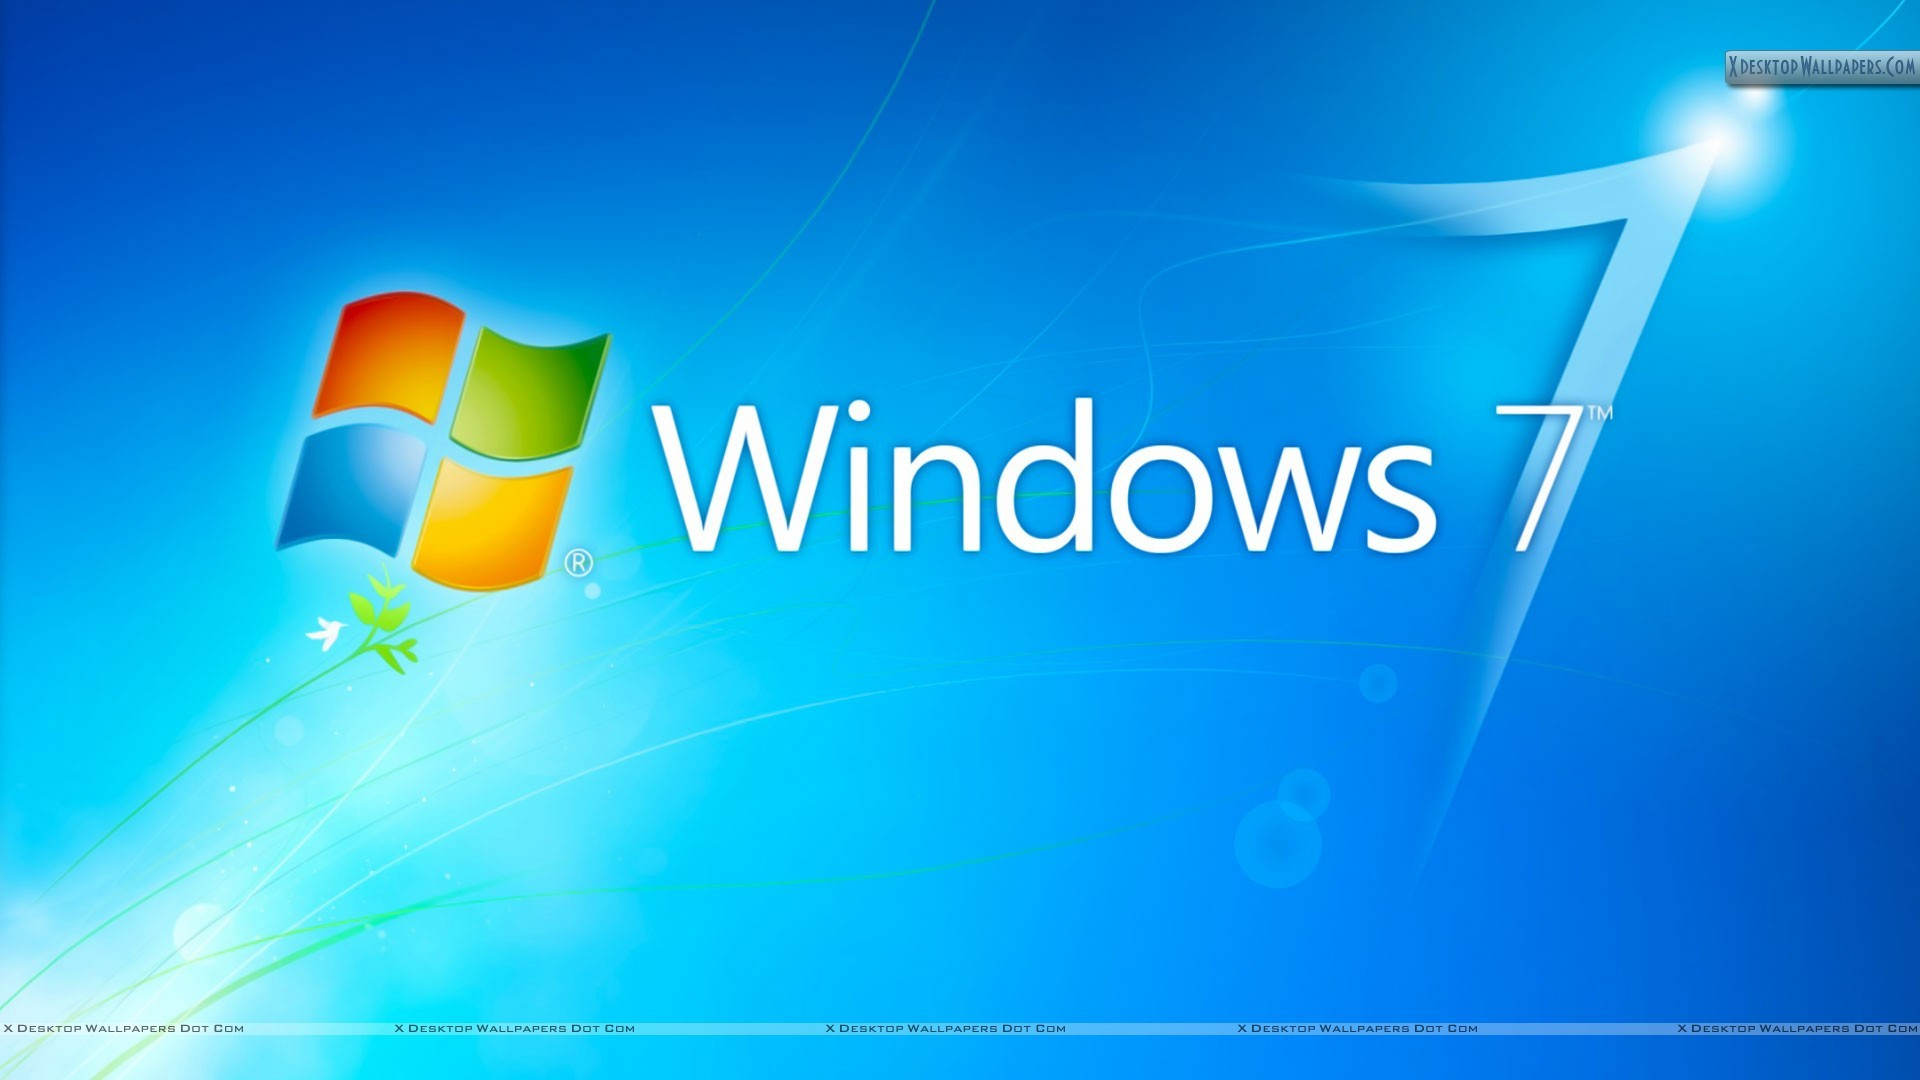 Tclsh download windows 7